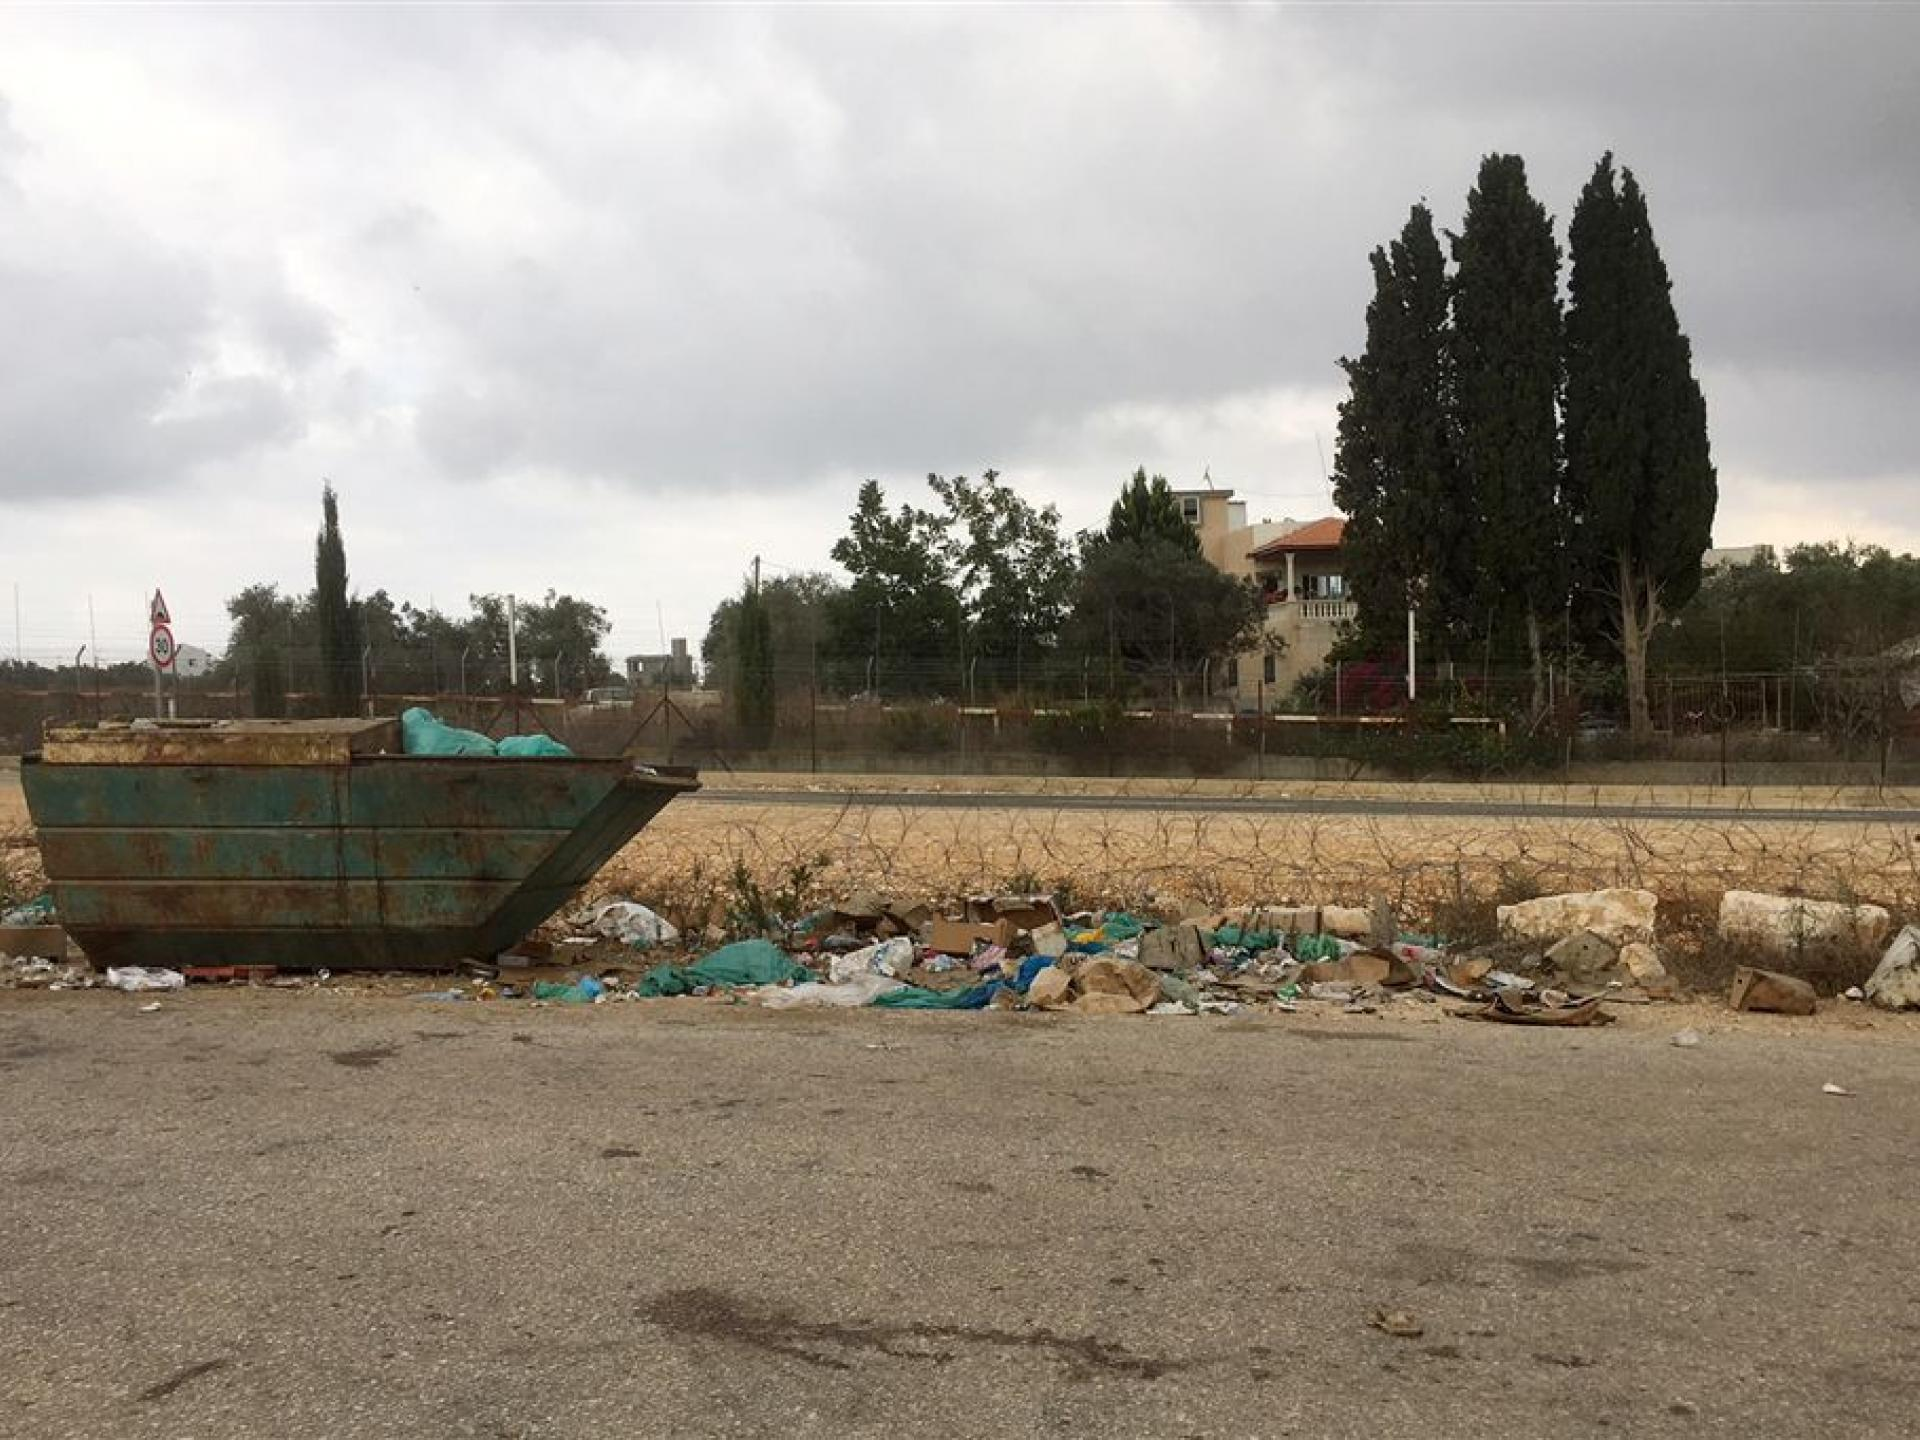 Tura – Shaked Checkpoint: The IDF is responsible for the permanent garbage dump at the entrance to the checkpoint.